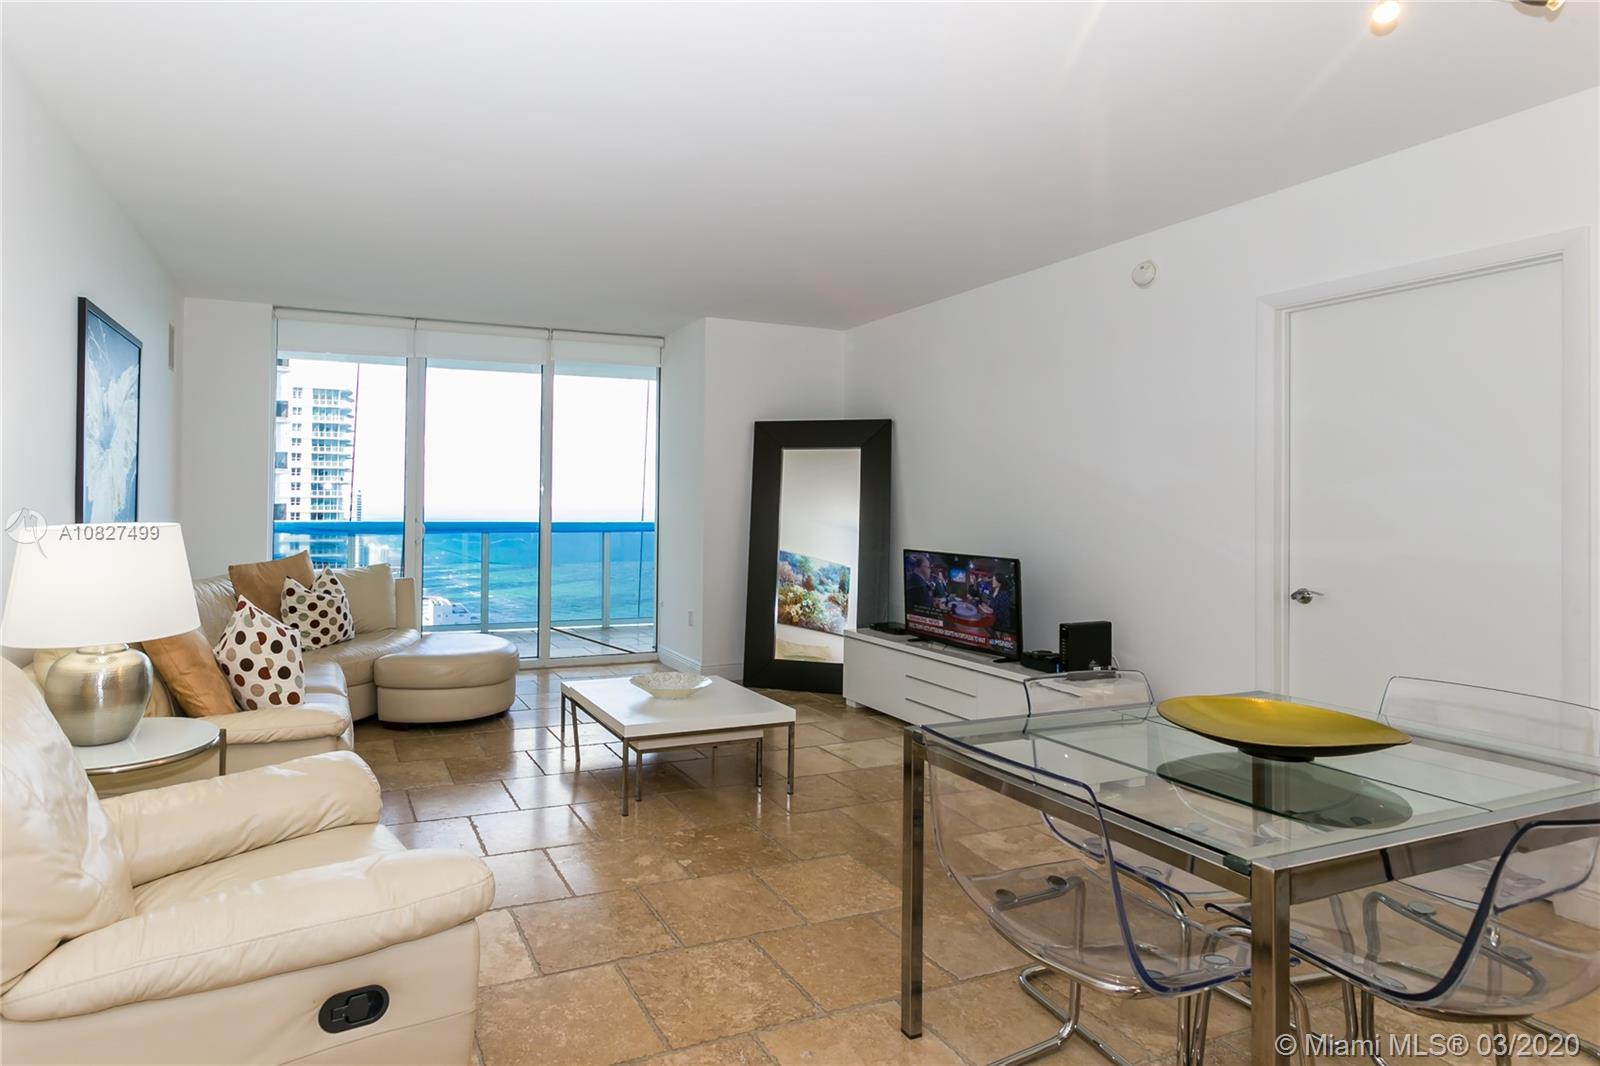 The Beach Club II, 1830 S Ocean Dr Unit 4010, Hallandale Beach, Florida 33009